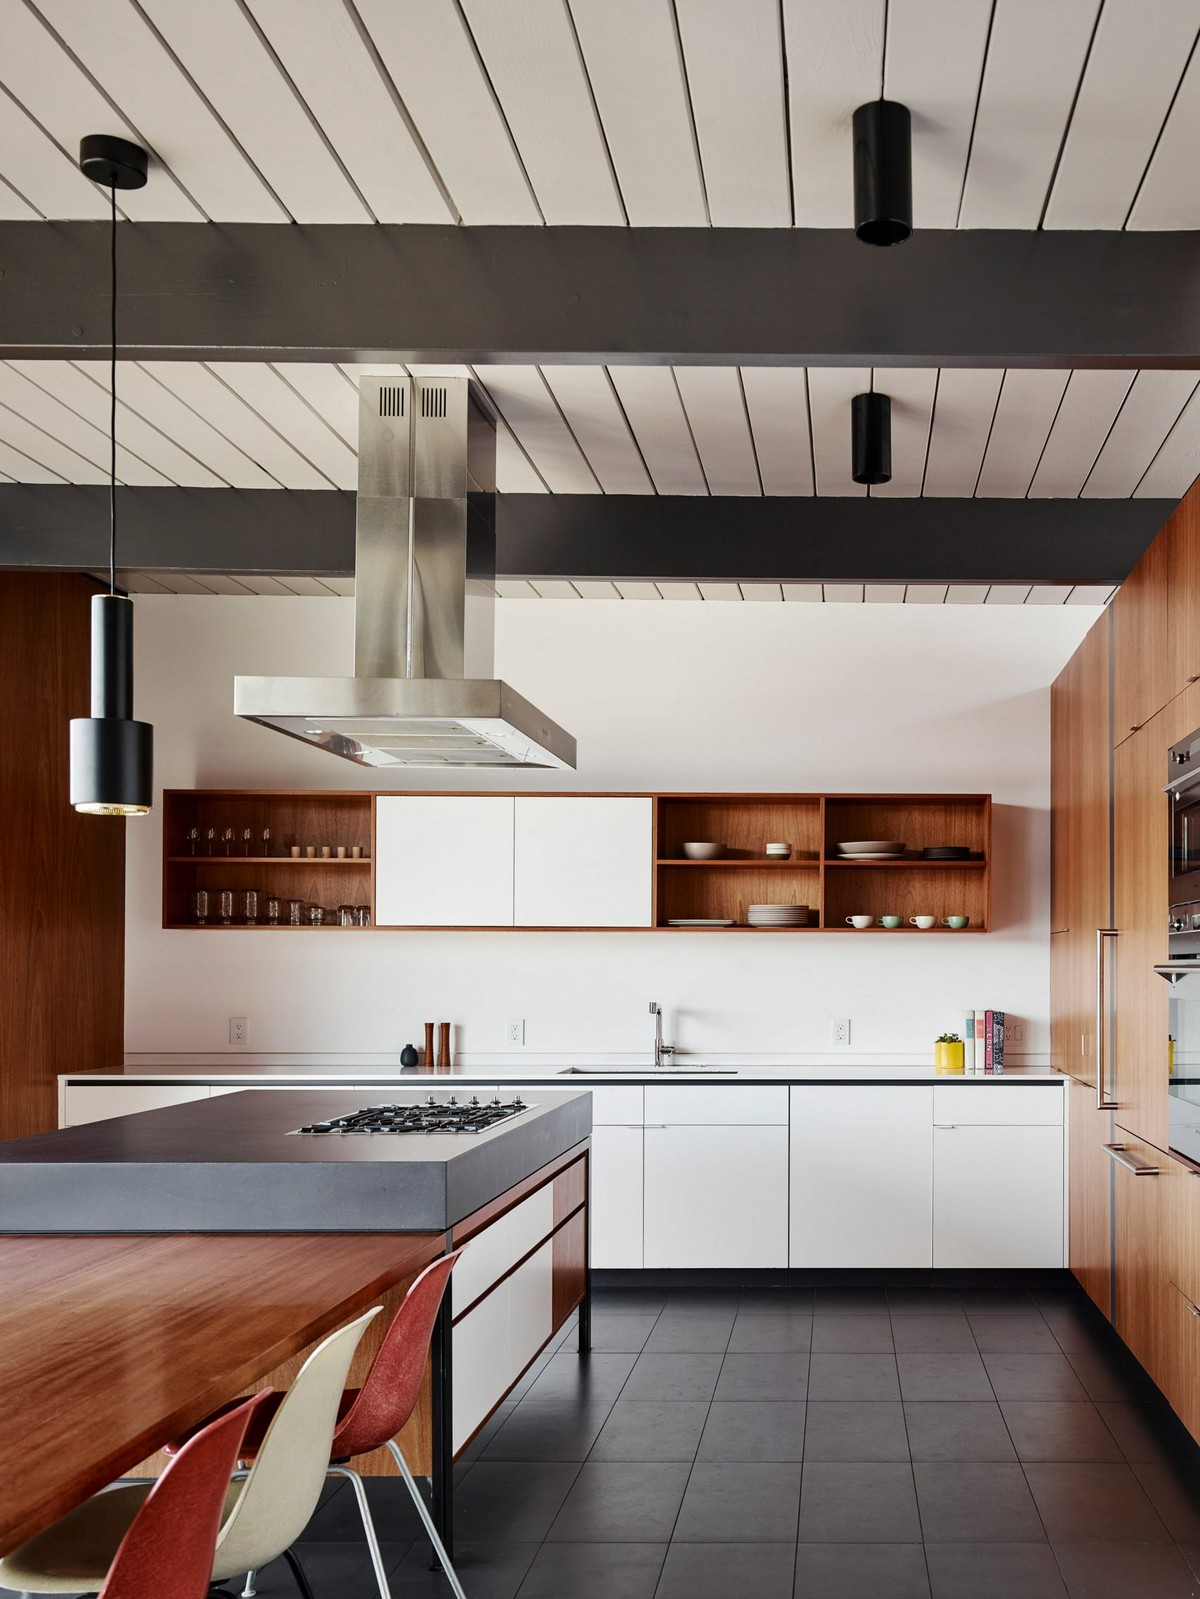 San Francisco Home Gets a Mid-Century Look by Michael Hennessey | A 1960s home in California built by Joseph Eichler, the father of America's modernist housing. #interiordesign #homedesign #midcentury #homedecor #modernhome  San Francisco Home Gets a Mid-Century Look by Michael Hennessey diamond heights 1956 eichler home michael hennessey architecture san francisco california usa renovation dezeen 2364 col 13 1704x2271